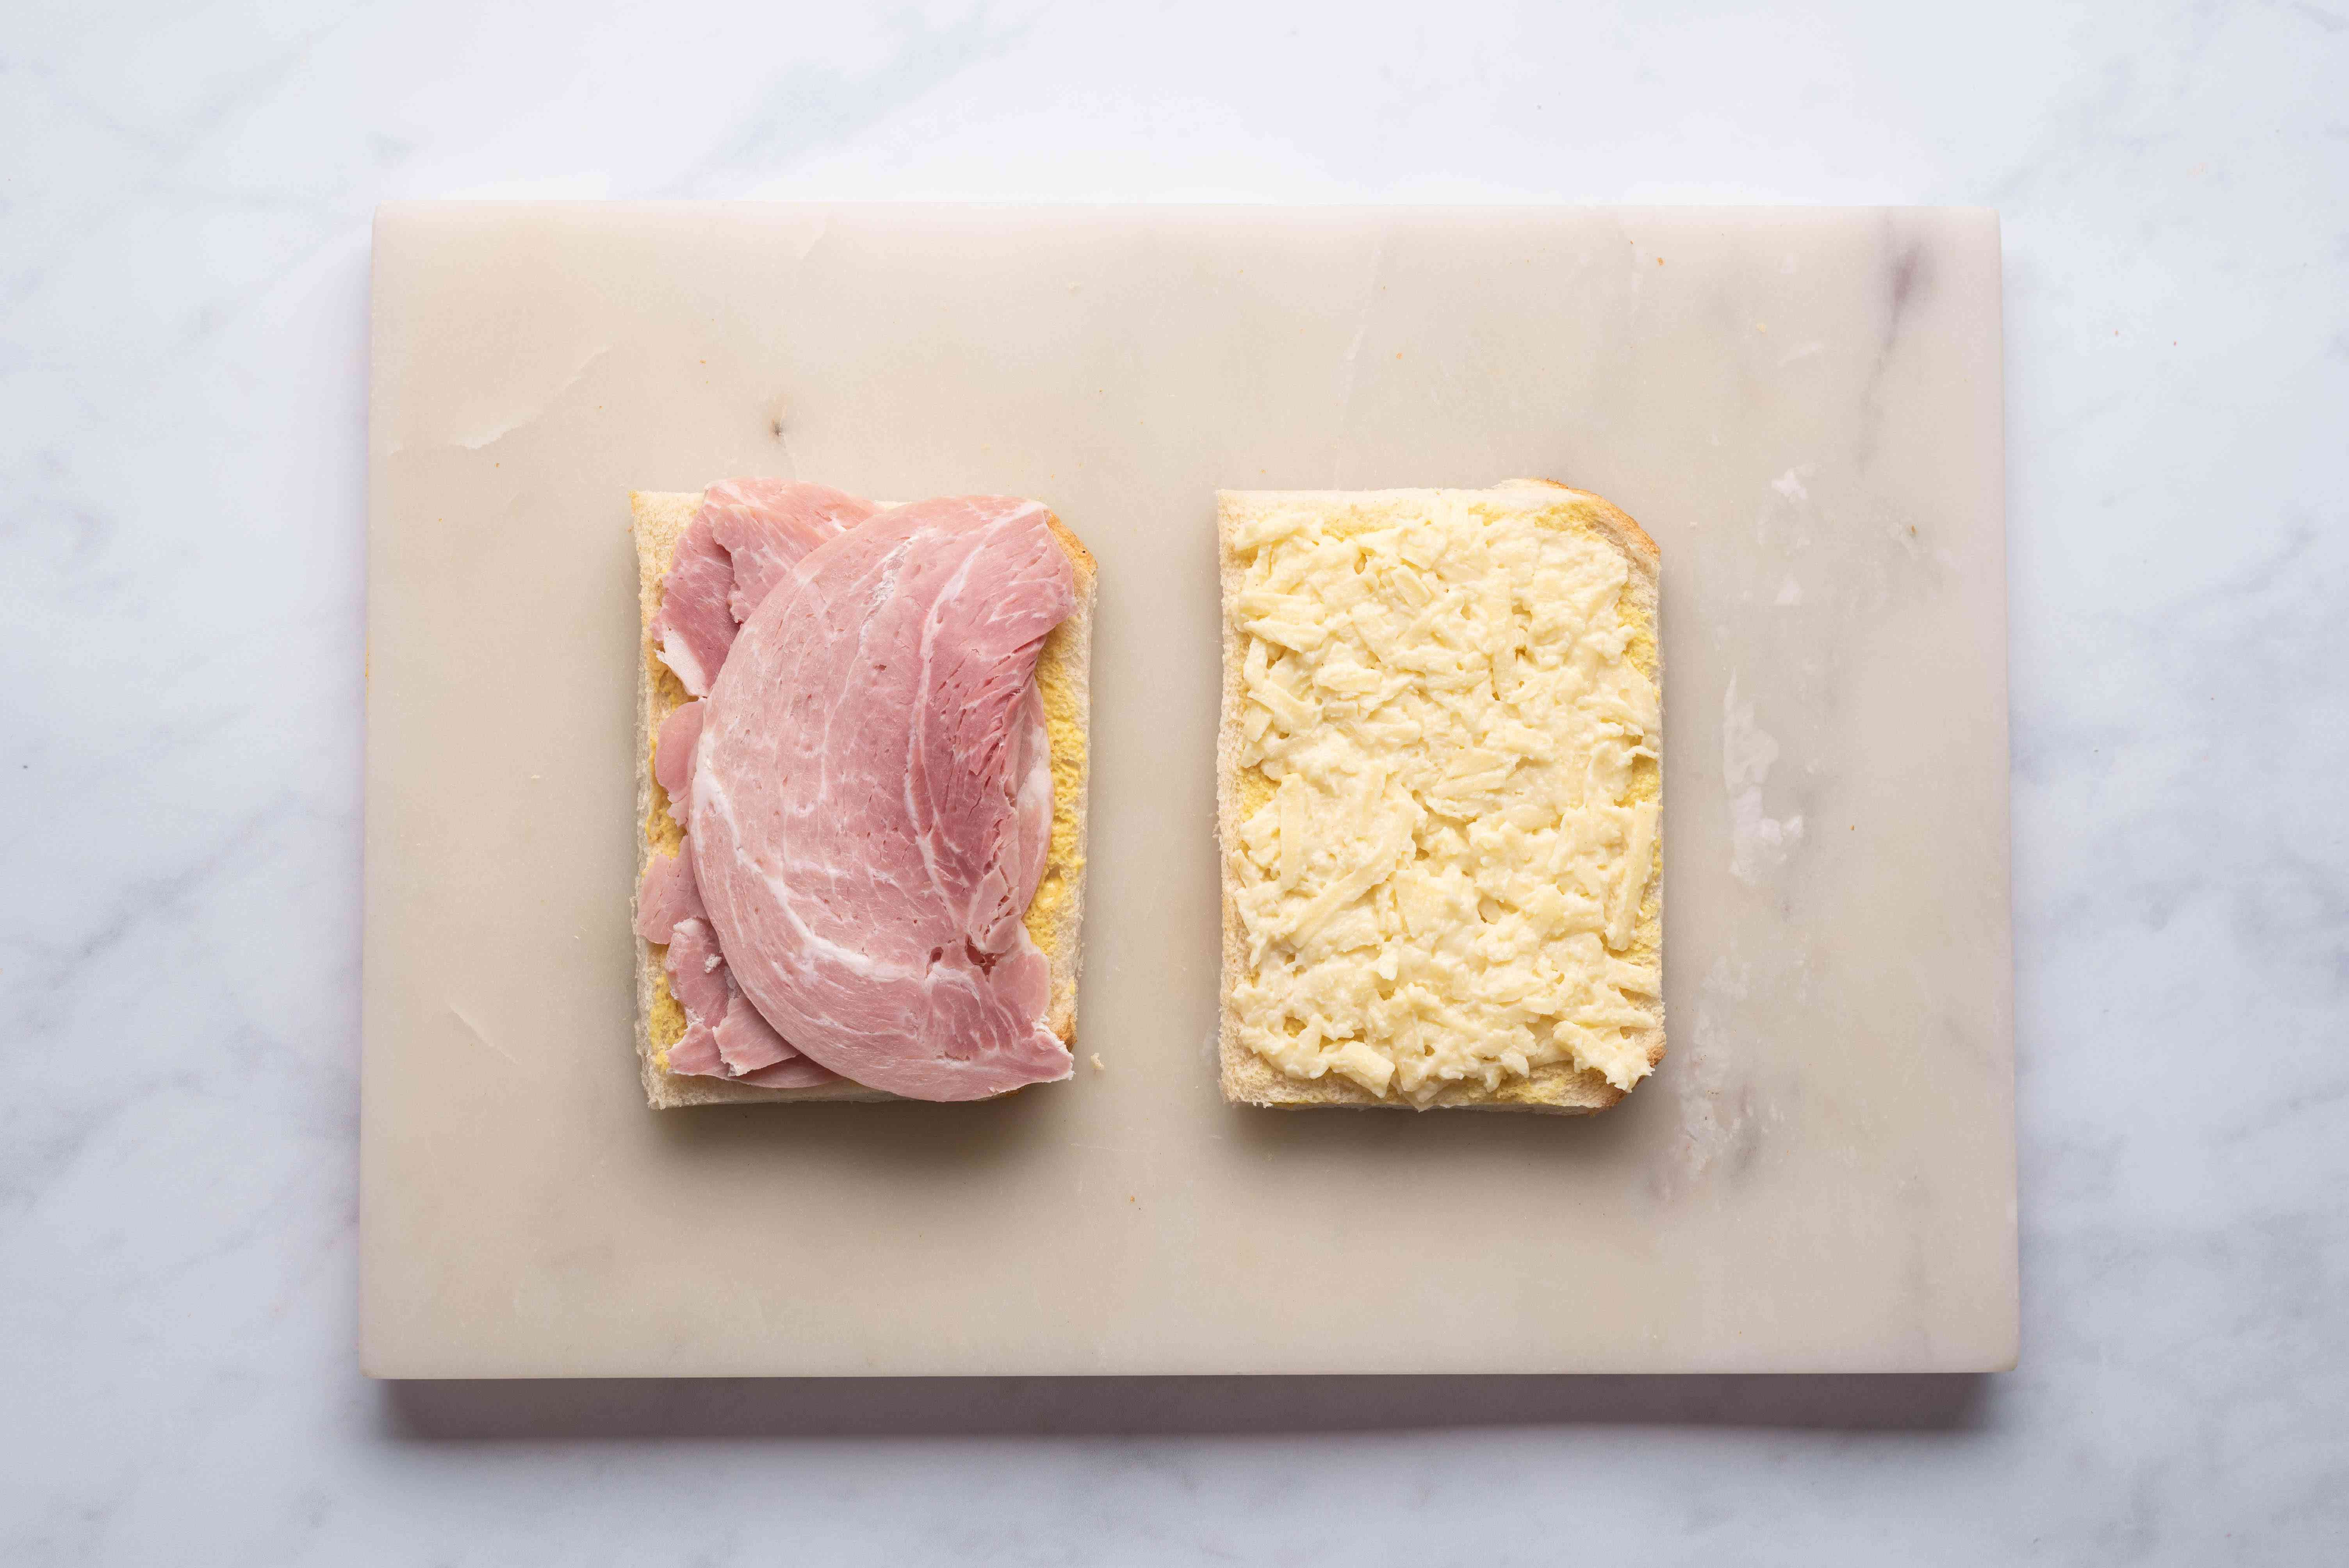 ham and cheese on top of slices of bread